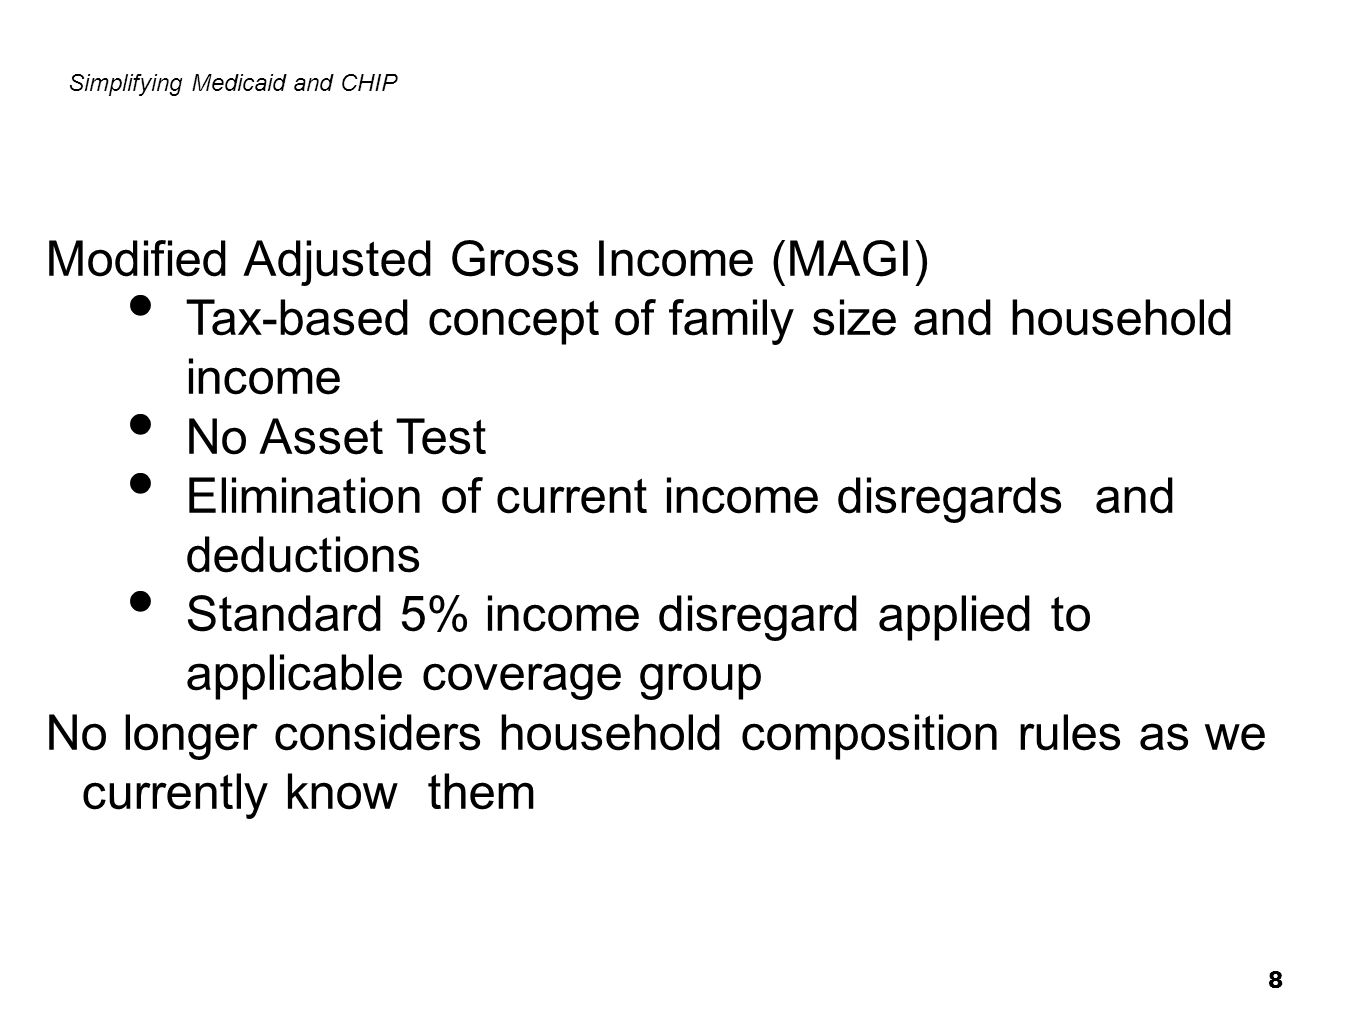 8 Simplifying Medicaid and CHIP Modified Adjusted Gross Income (MAGI) Tax-based concept of family size and household income No Asset Test Elimination of current income disregards and deductions Standard 5% income disregard applied to applicable coverage group No longer considers household composition rules as we currently know them